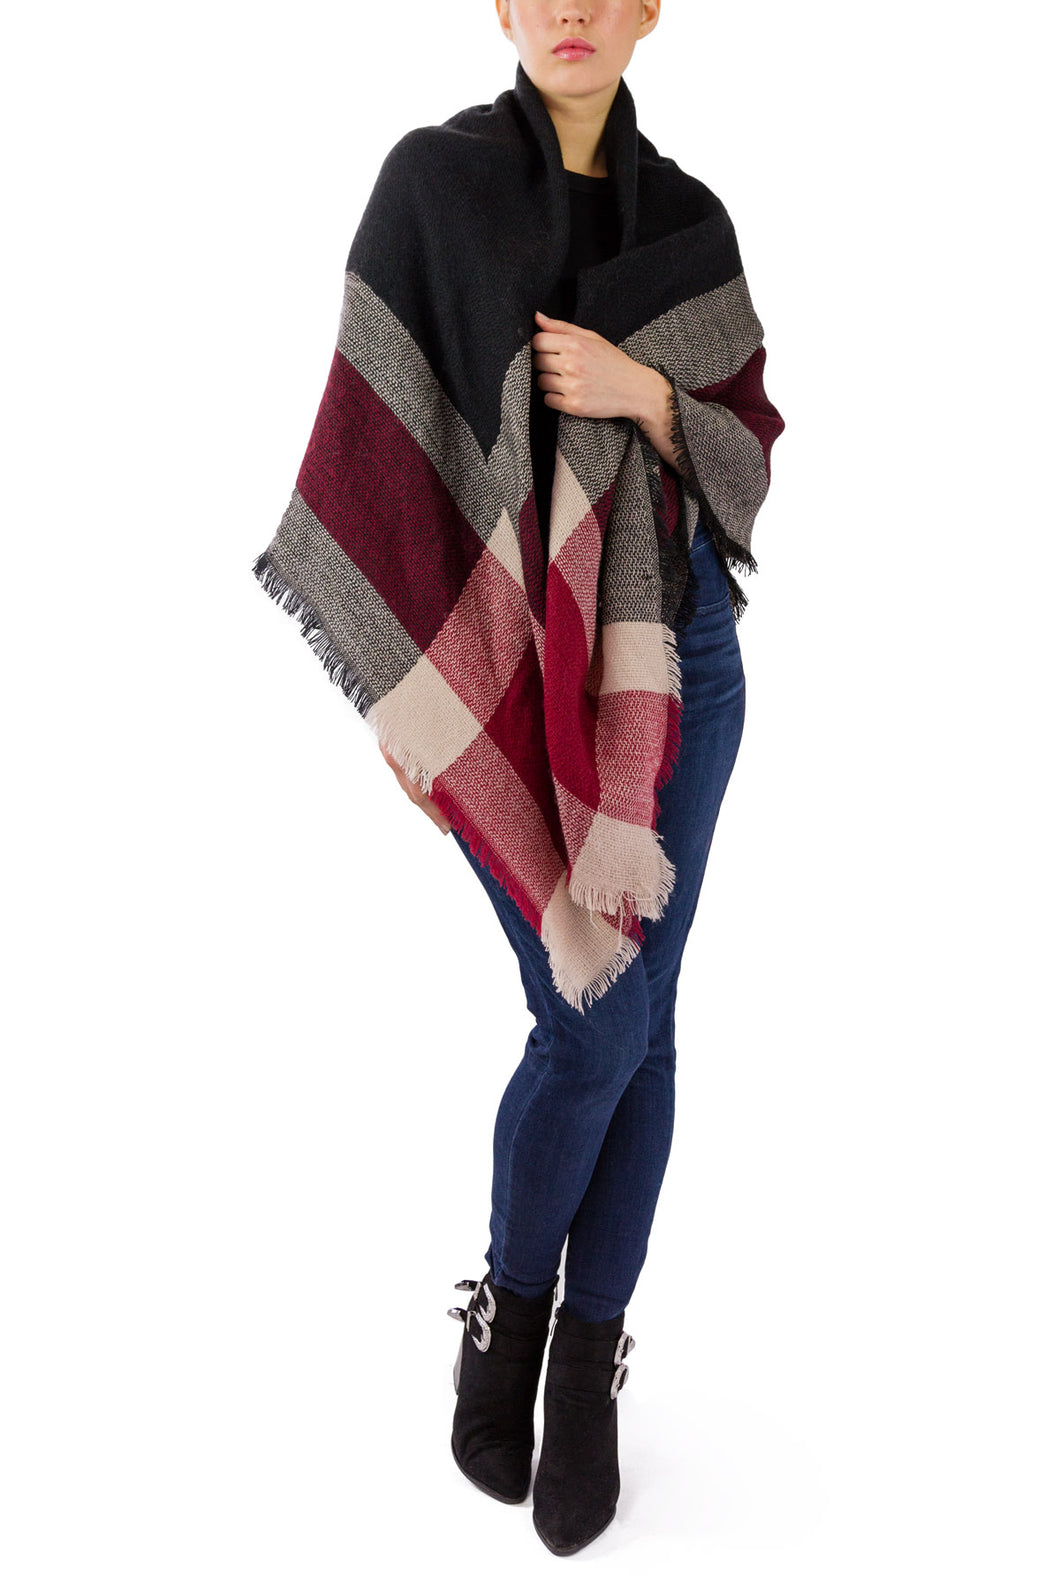 Plaid Blanket Wrap - Just Jamie